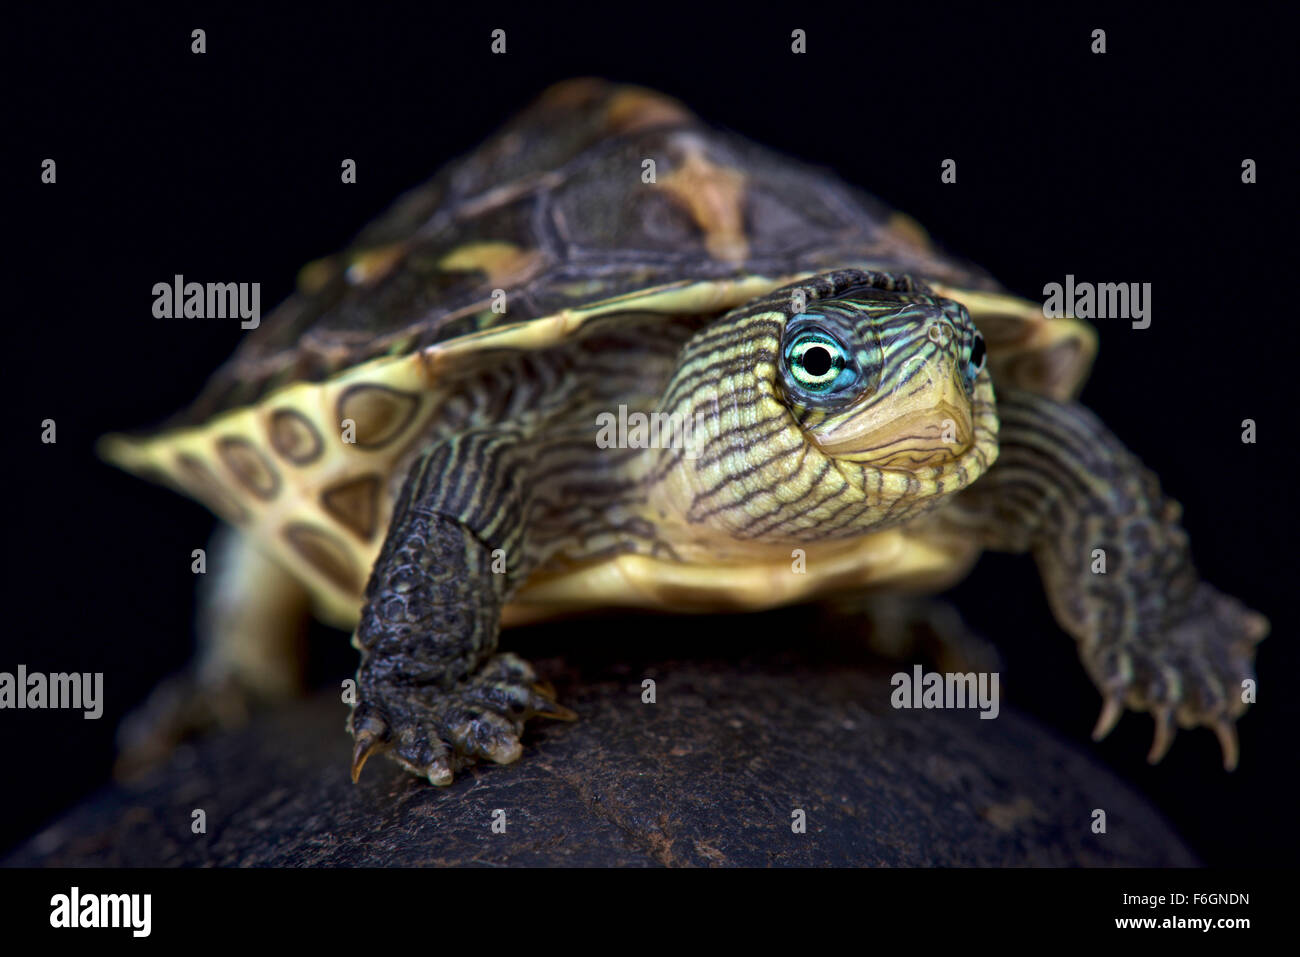 Chinese stripe-necked turtle (Mauremys sinensis) - Stock Image